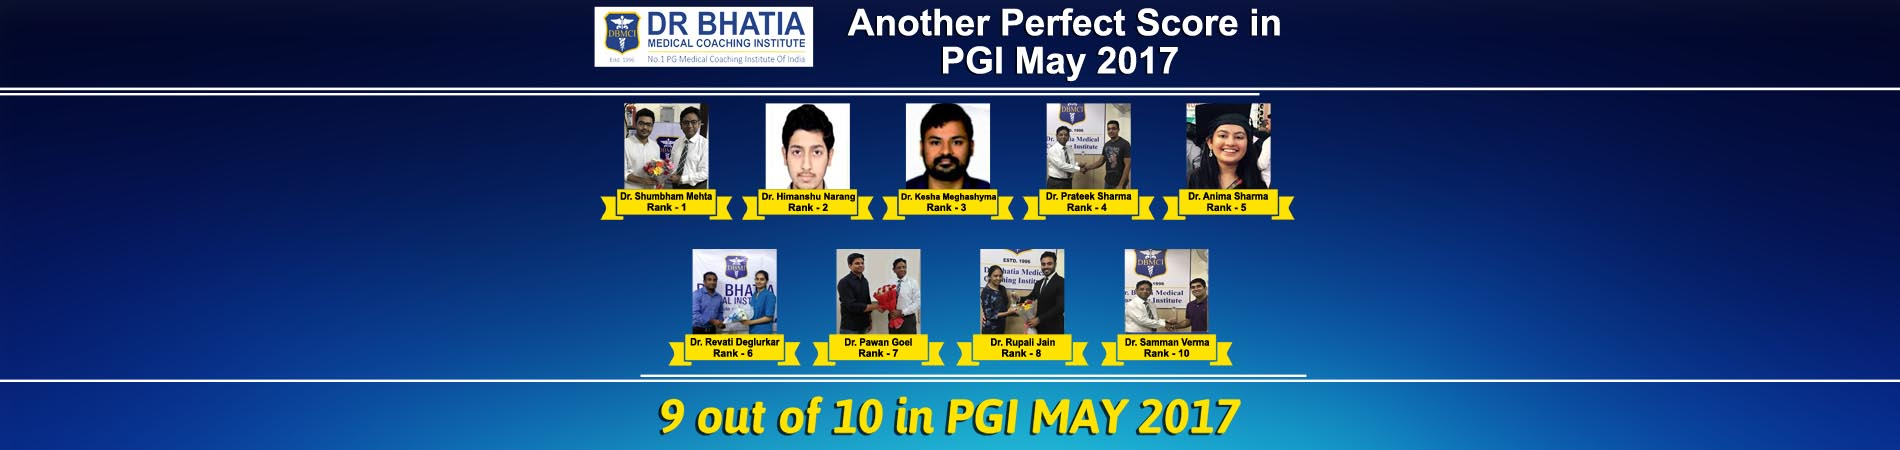 PGI May 2017 Toppers